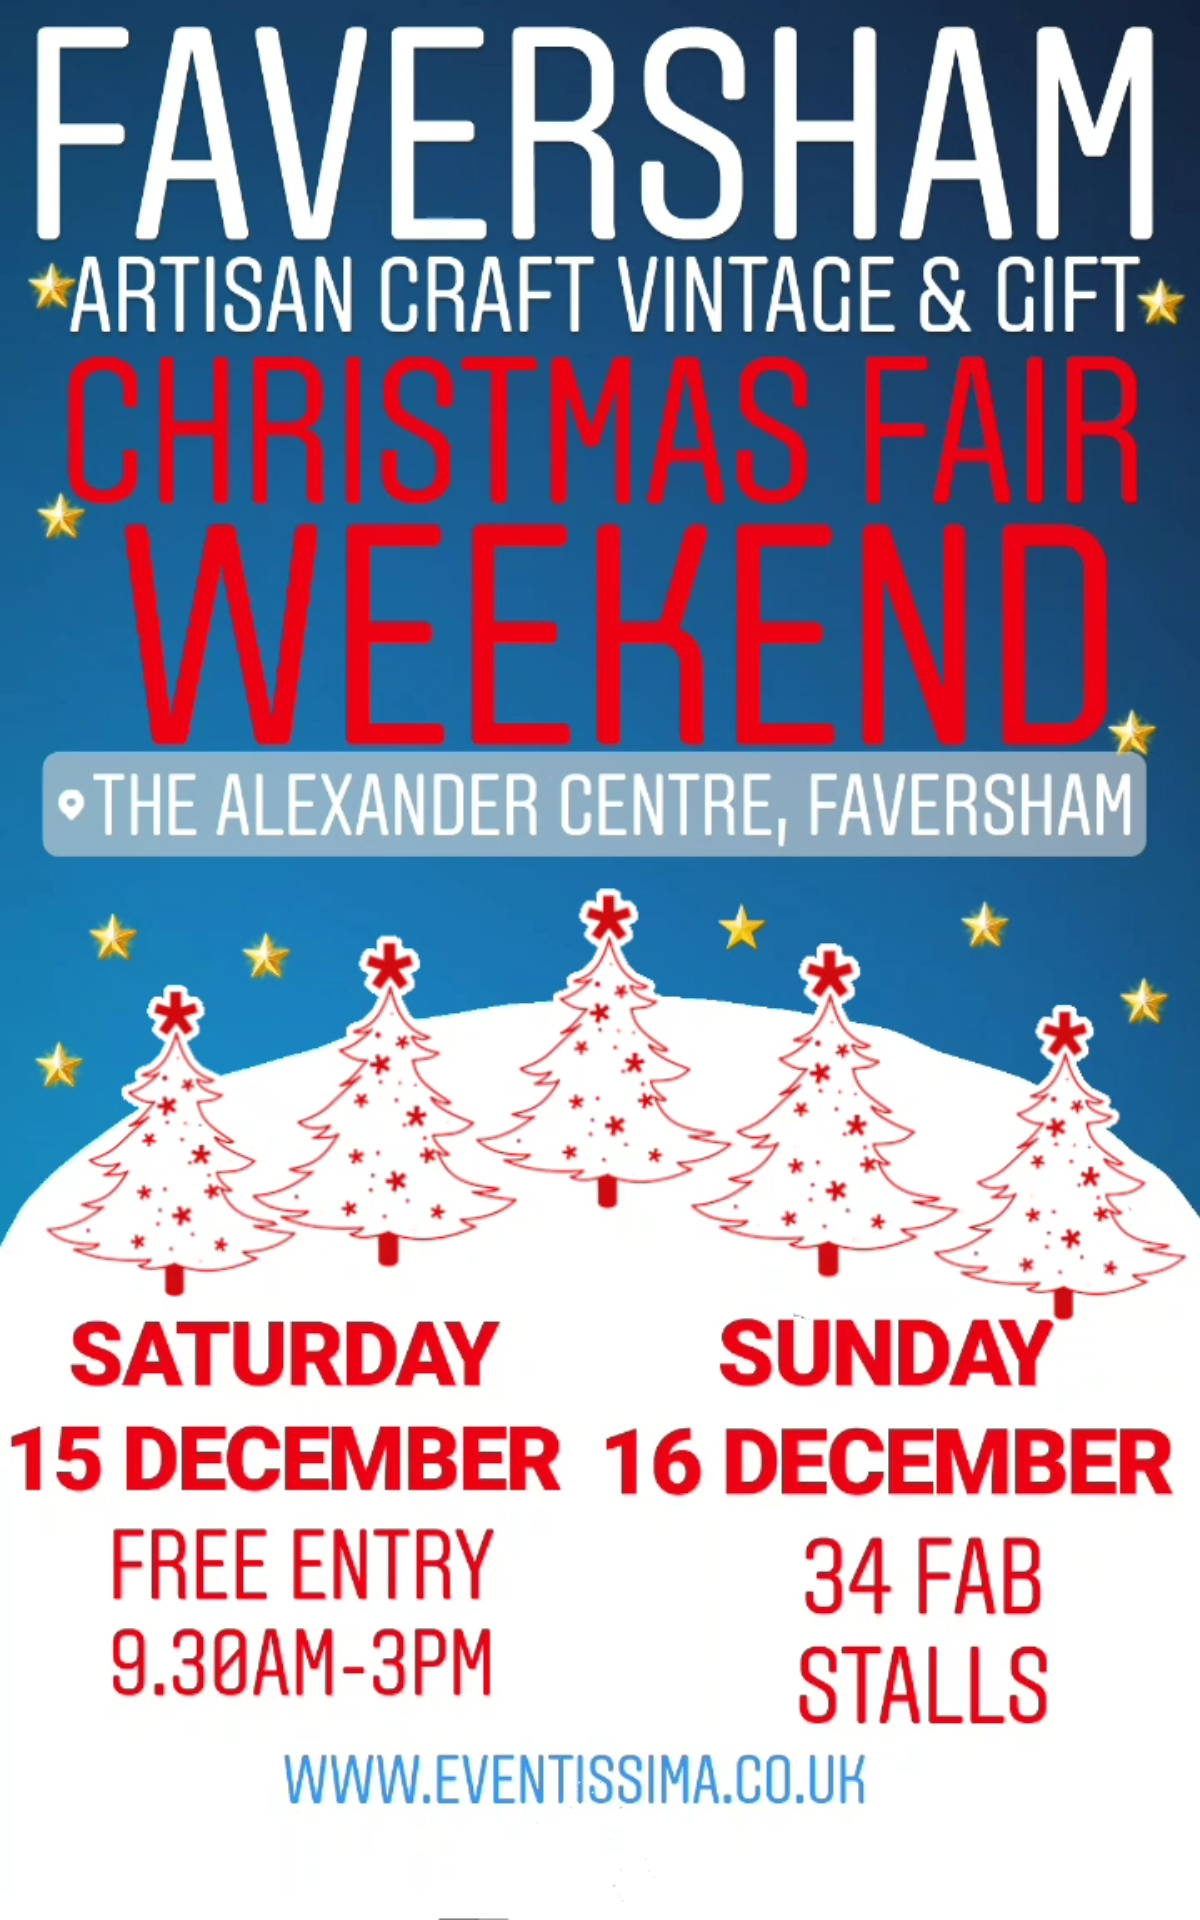 Eventissima Artisan Craft, Vintage and Gift Christmas Weekend Fair